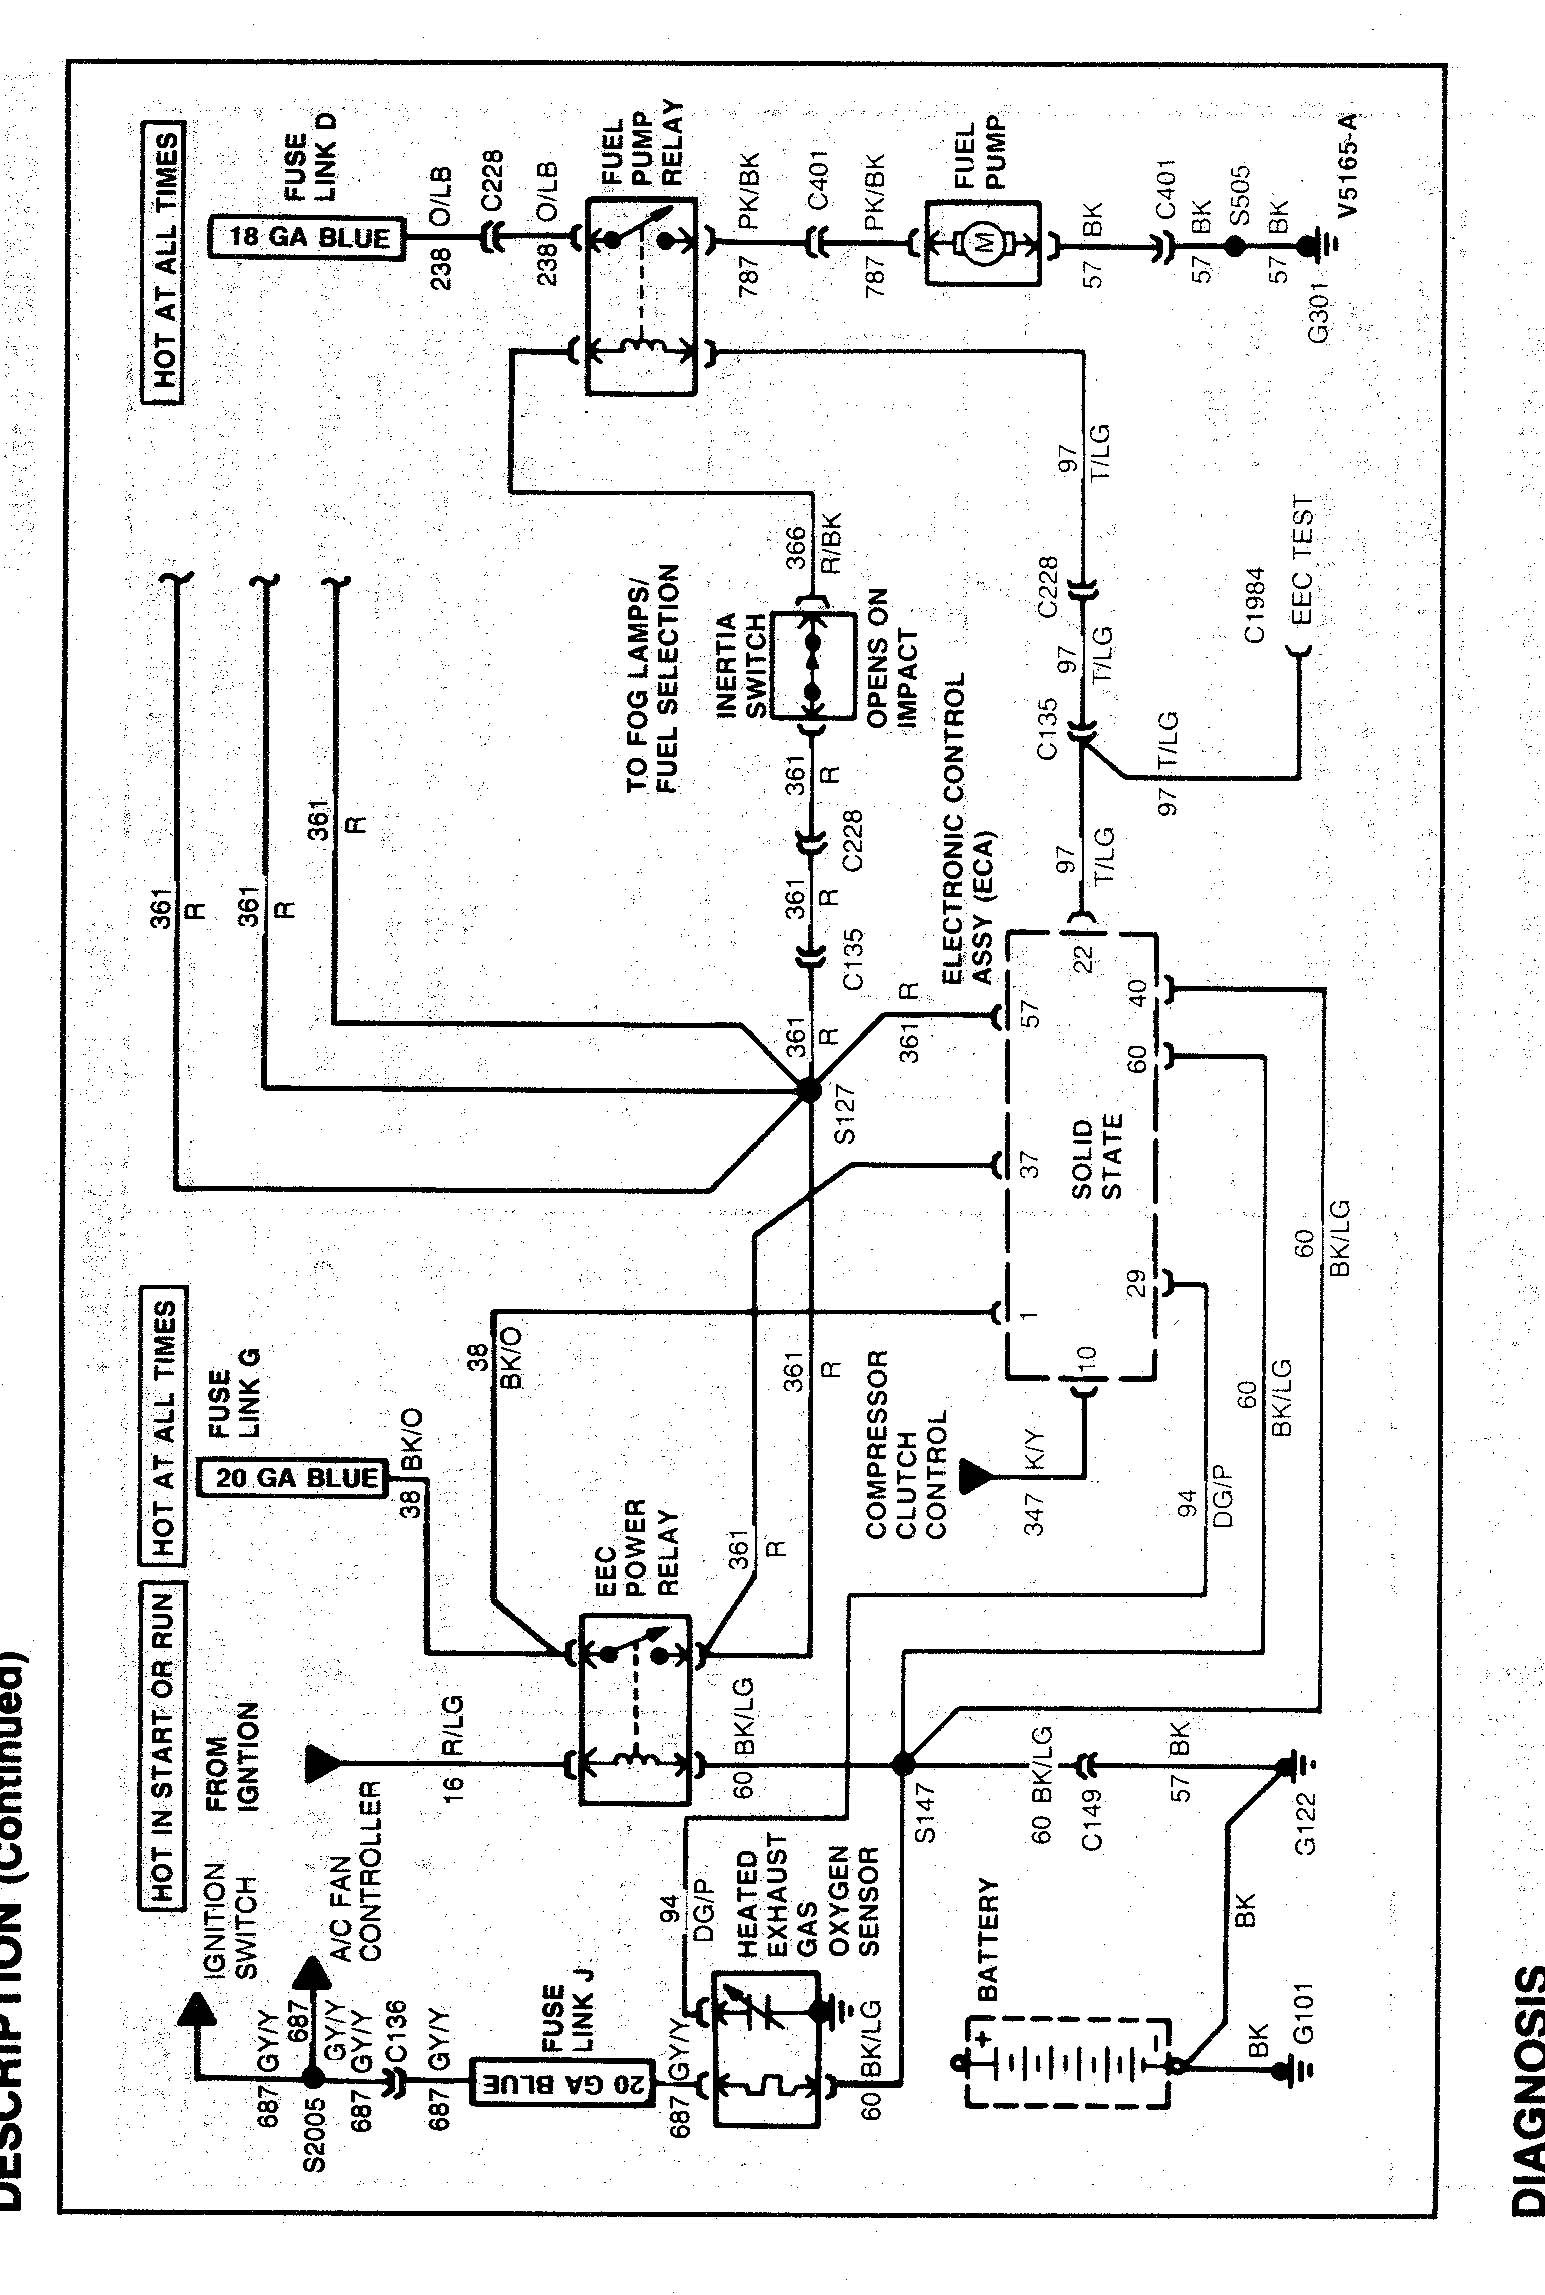 2004 mustang fuel pump wiring diagram 2004 image bypassing fuel pump relay ford mustang forum on 2004 mustang fuel pump wiring diagram